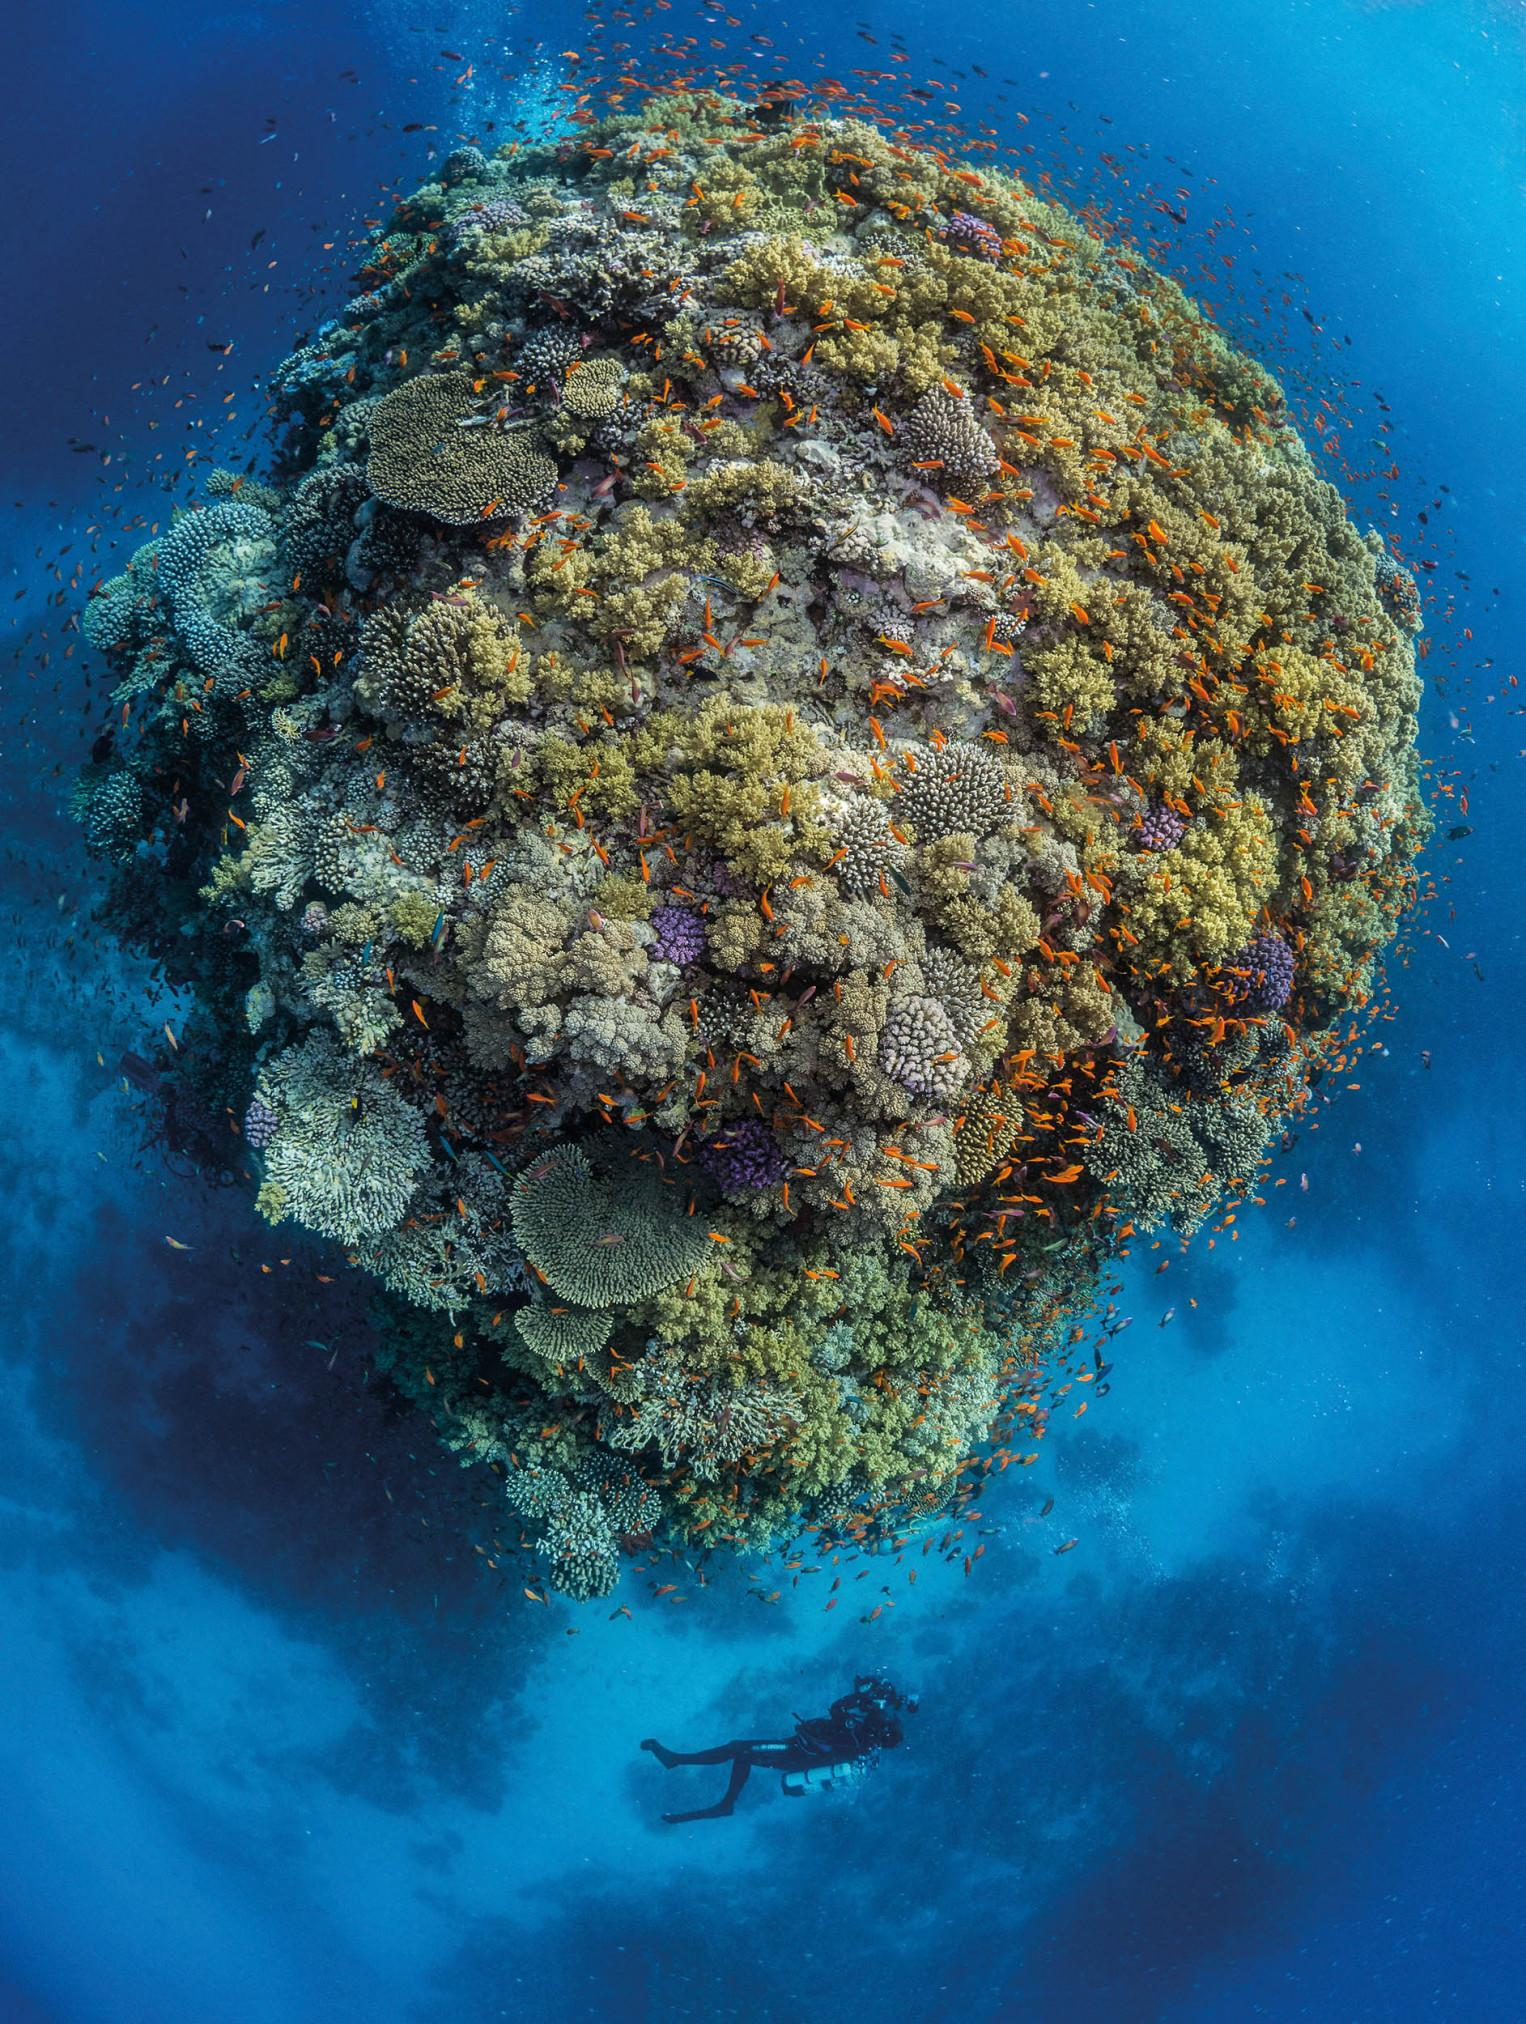 Top Down Pinnacle with Diver - Photographs by Paul Duxfield